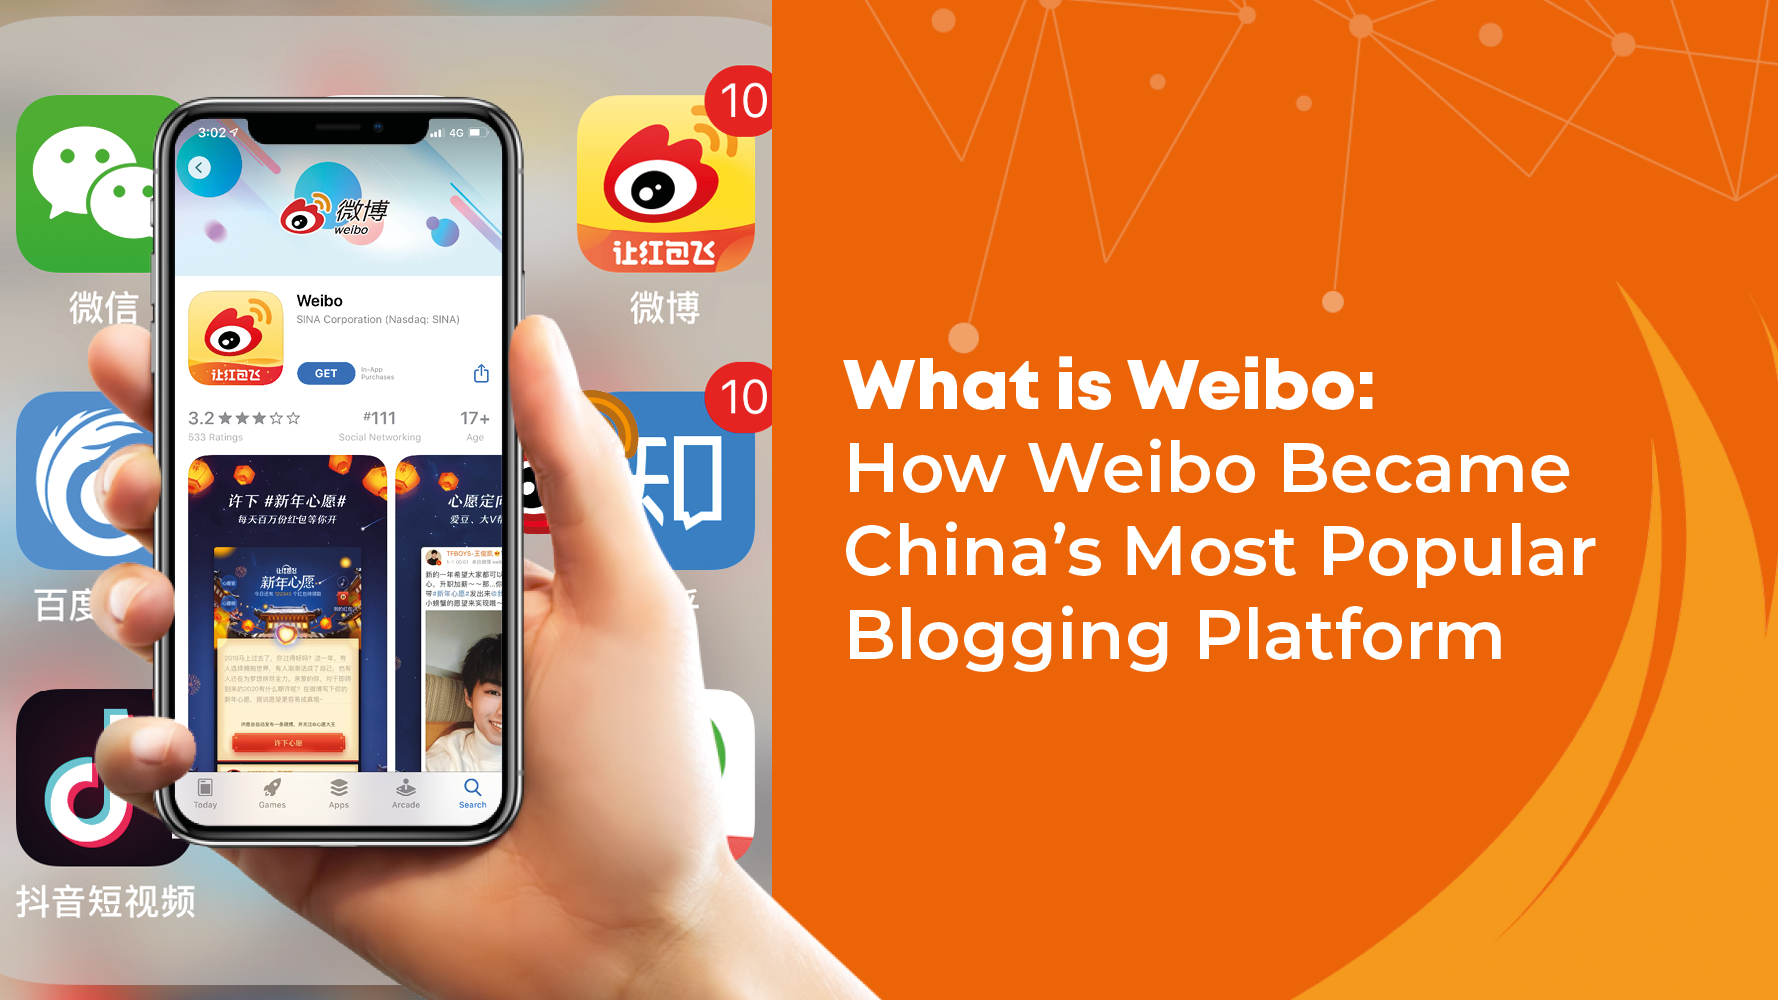 ignite-china-blog-post-december-2019-what-is-weibo-how-weibo-became-the-most-popular-blogging-platform